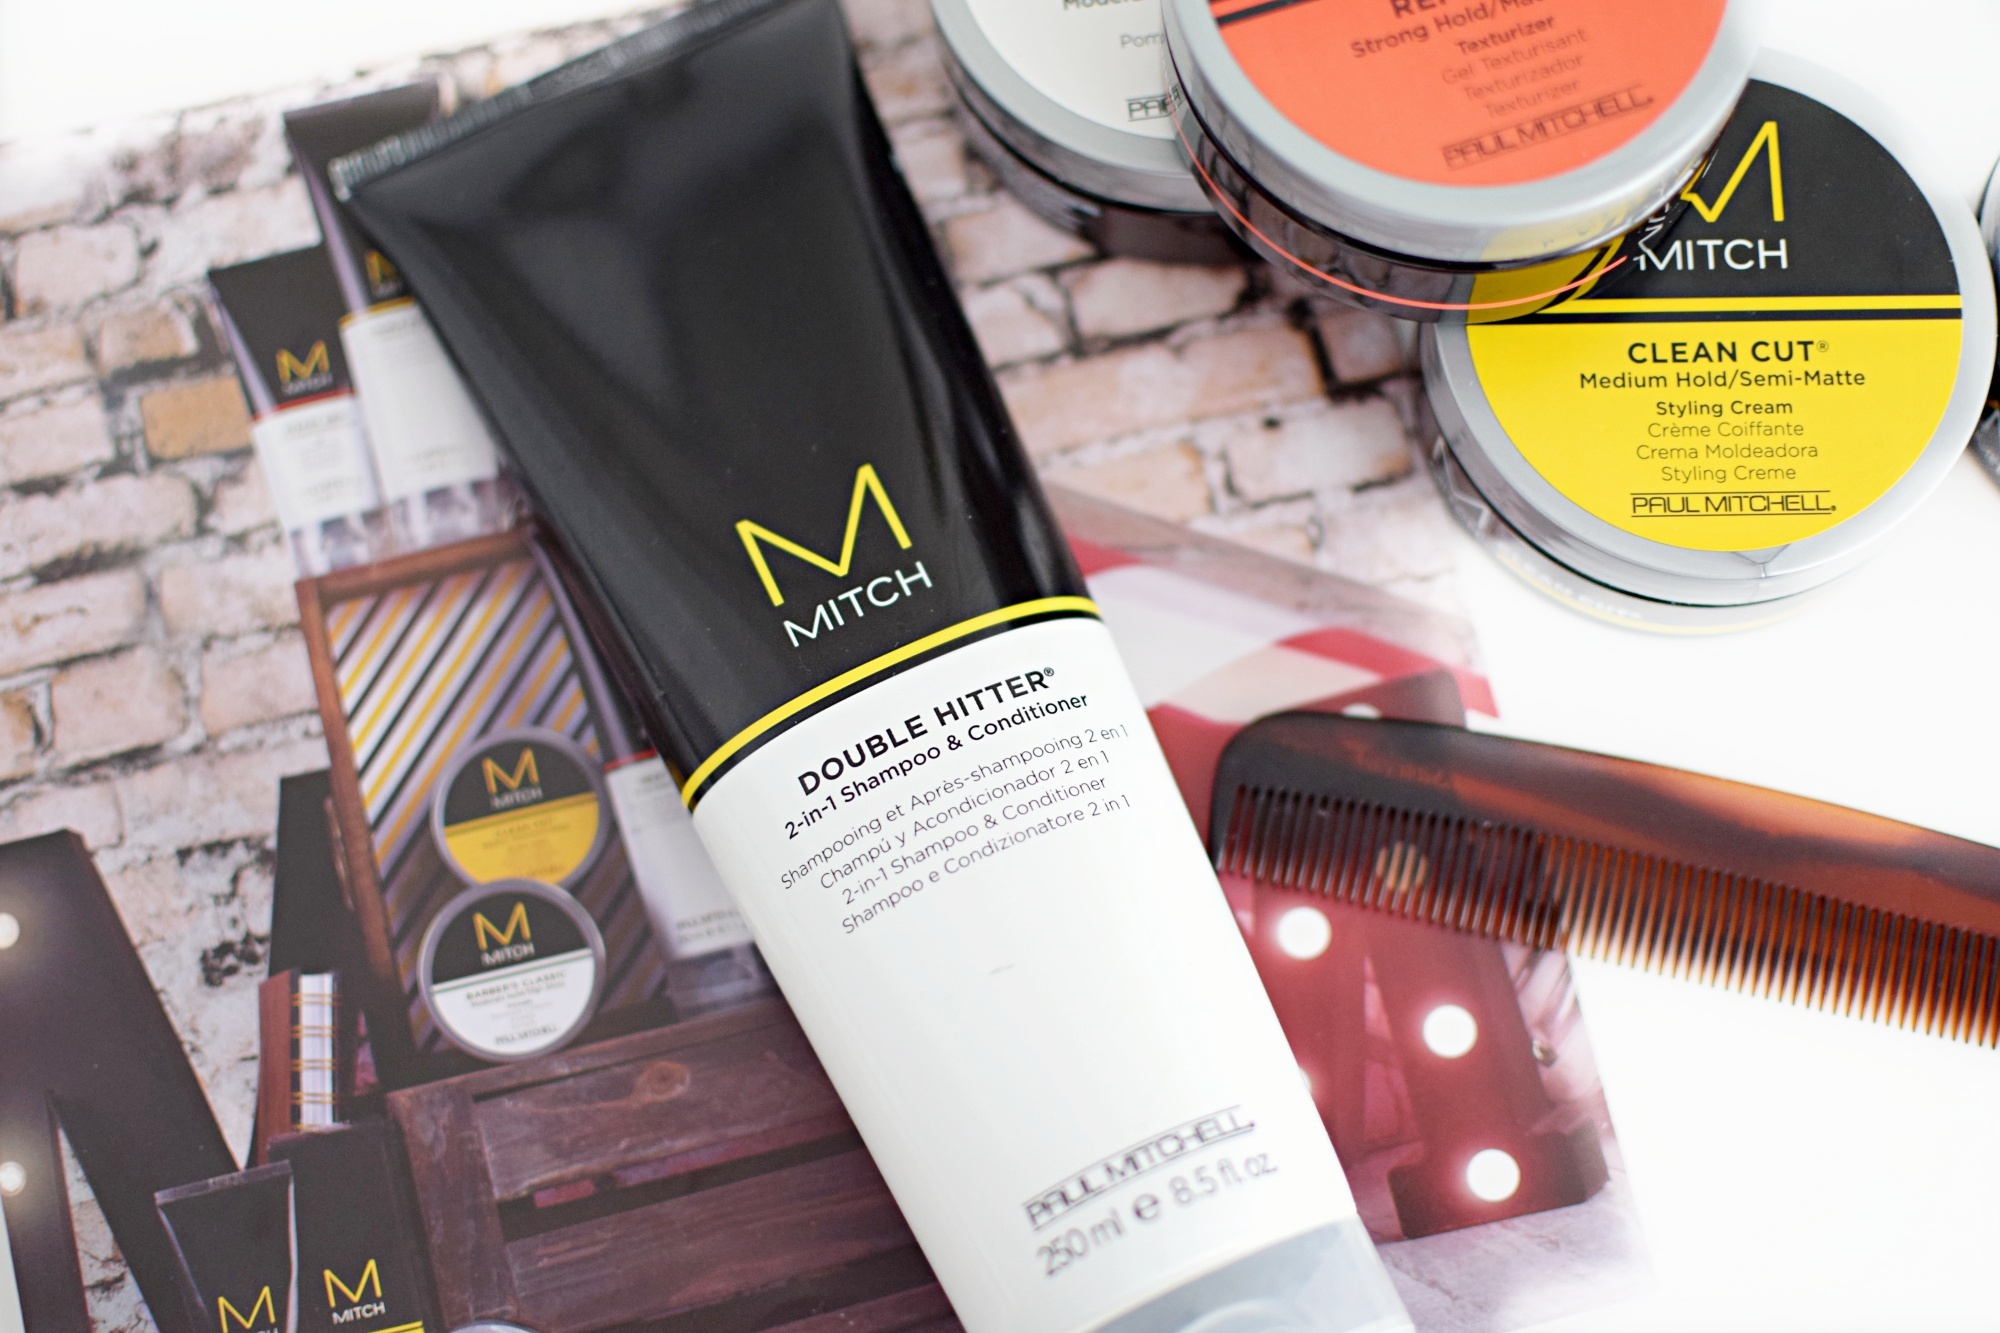 Mitch Matterial >> MITCH by Paul Mitchell Men's Hair Range Review